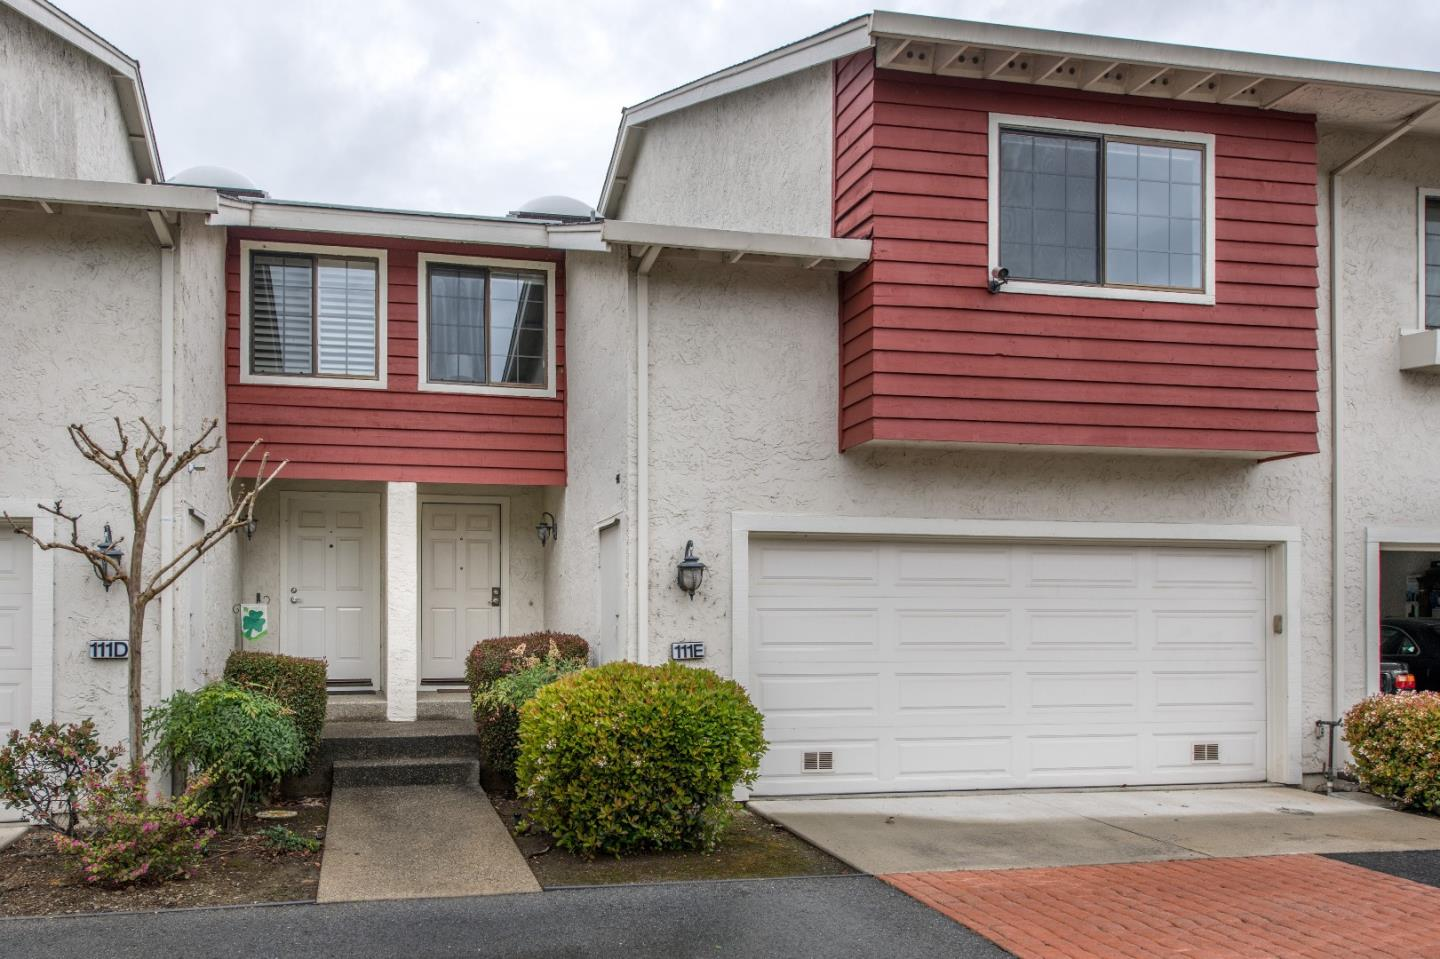 Townhouse for Sale at 111 Shelley Avenue 111 Shelley Avenue Campbell, California 95008 United States